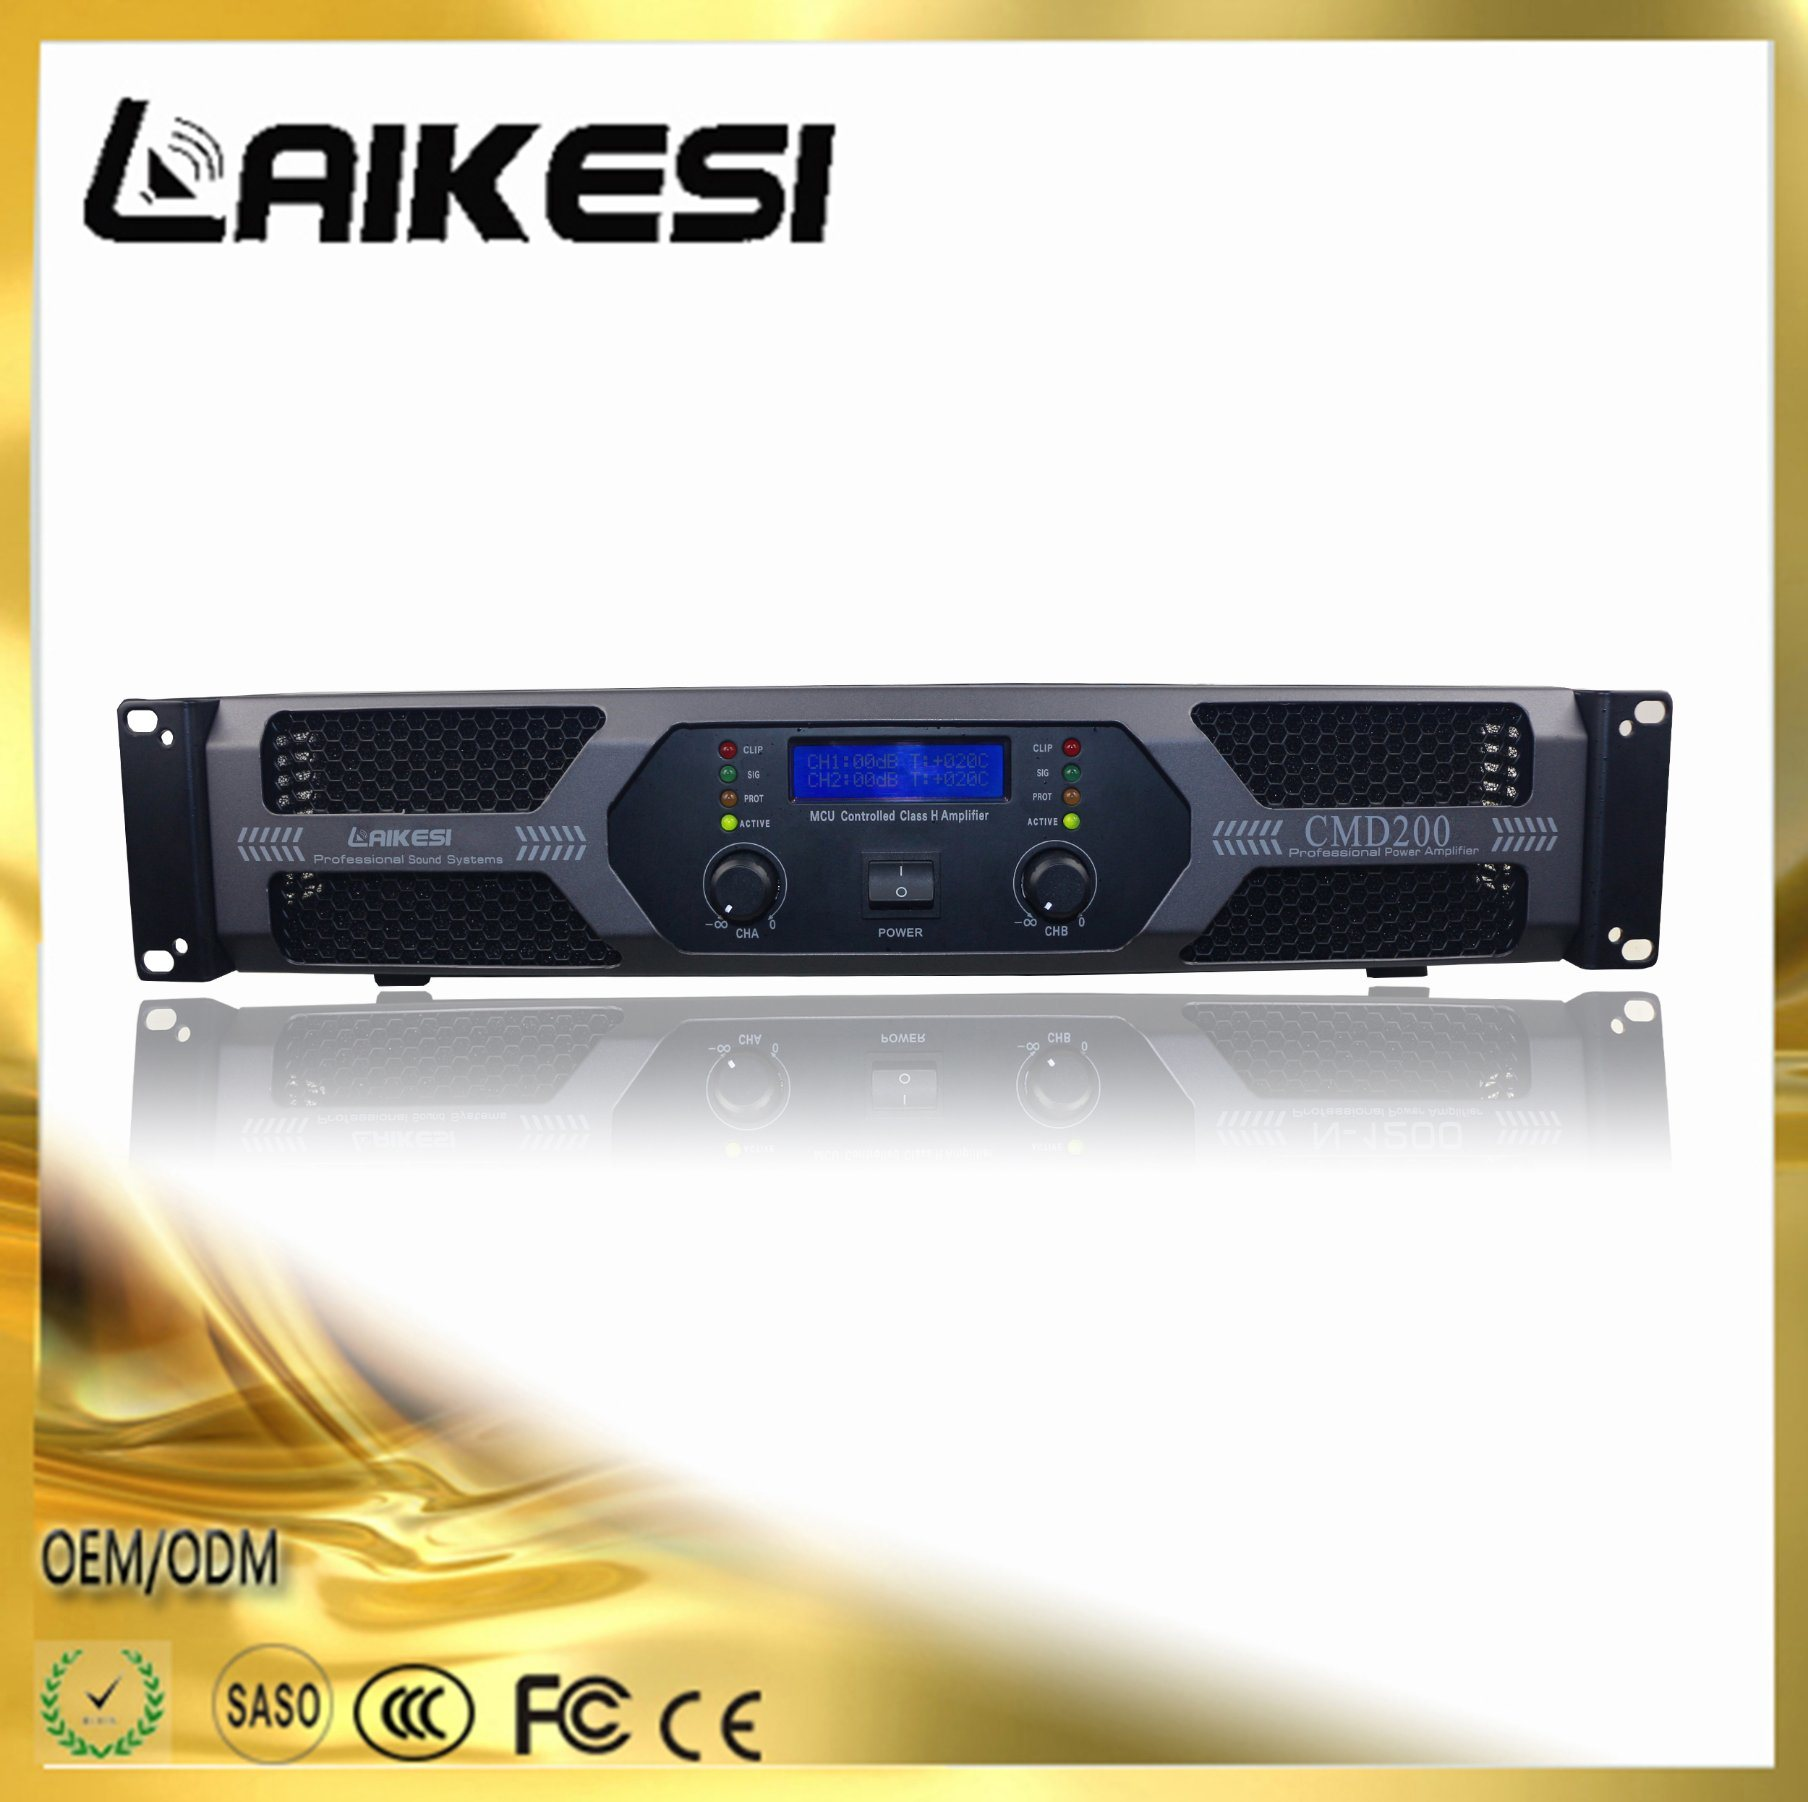 Cmd200 Stage Power Amplifier with Display